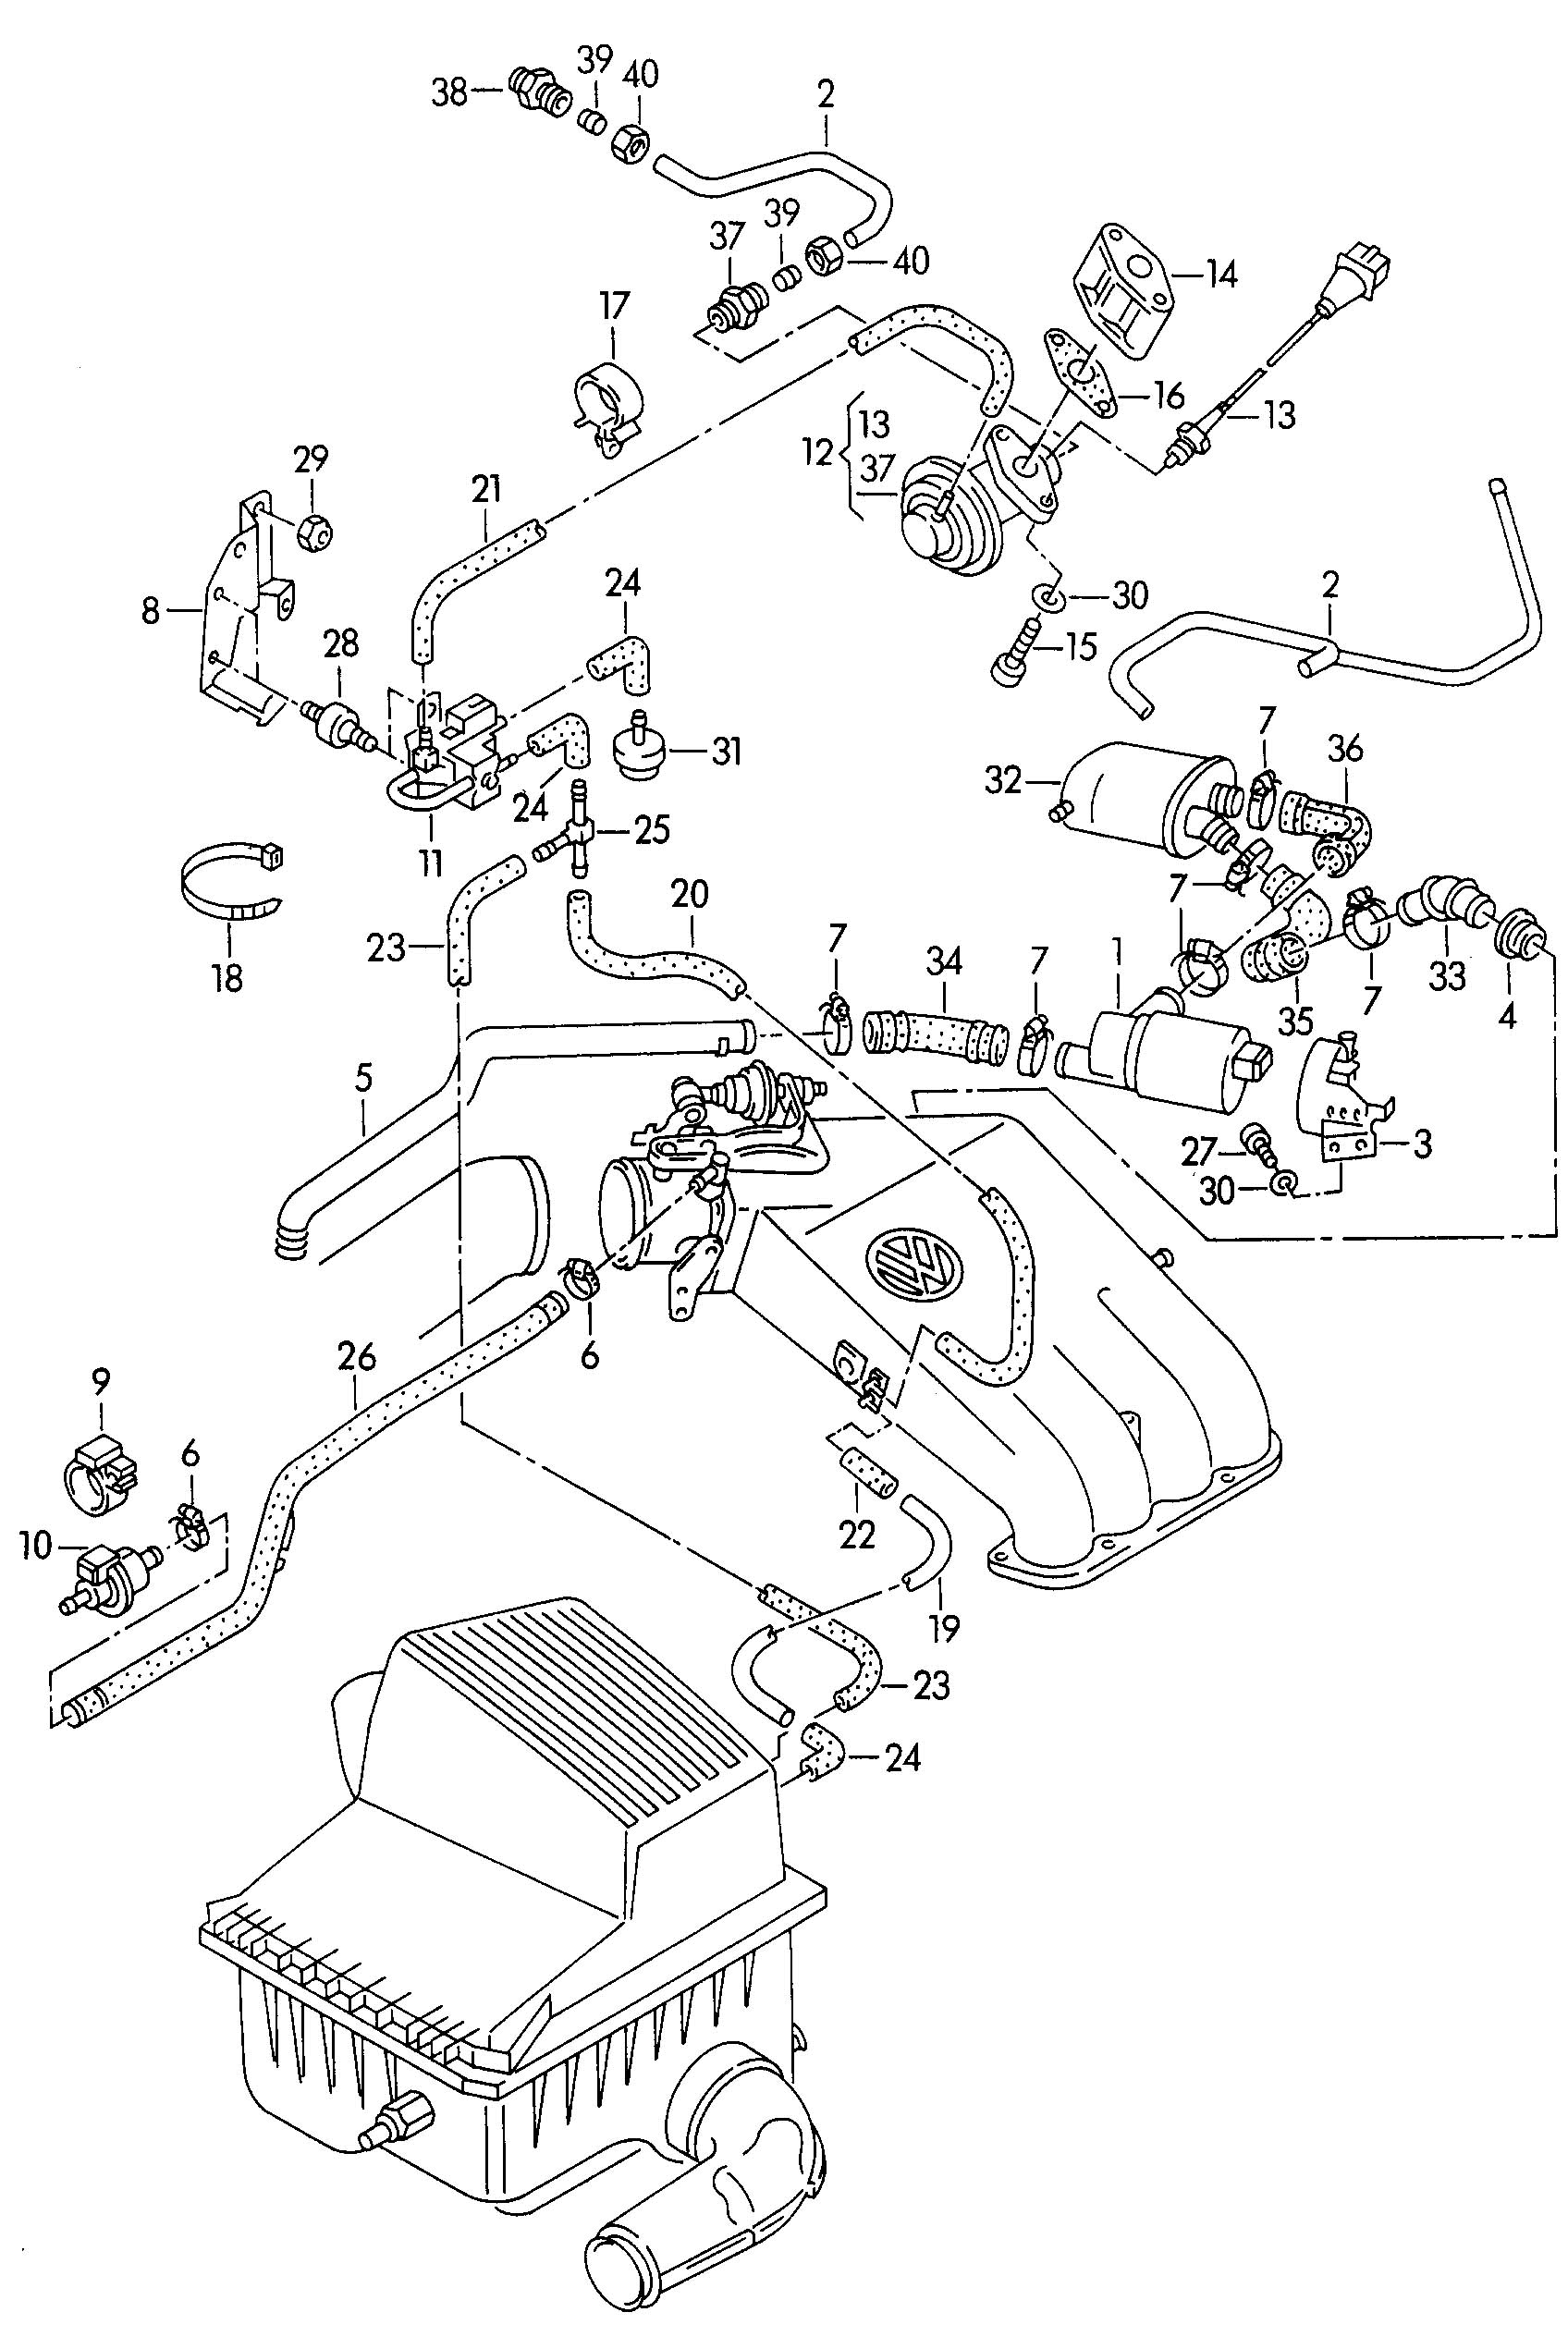 2004 vw touareg fuel pump wiring diagram toro 212h volkswagen filter get free image about